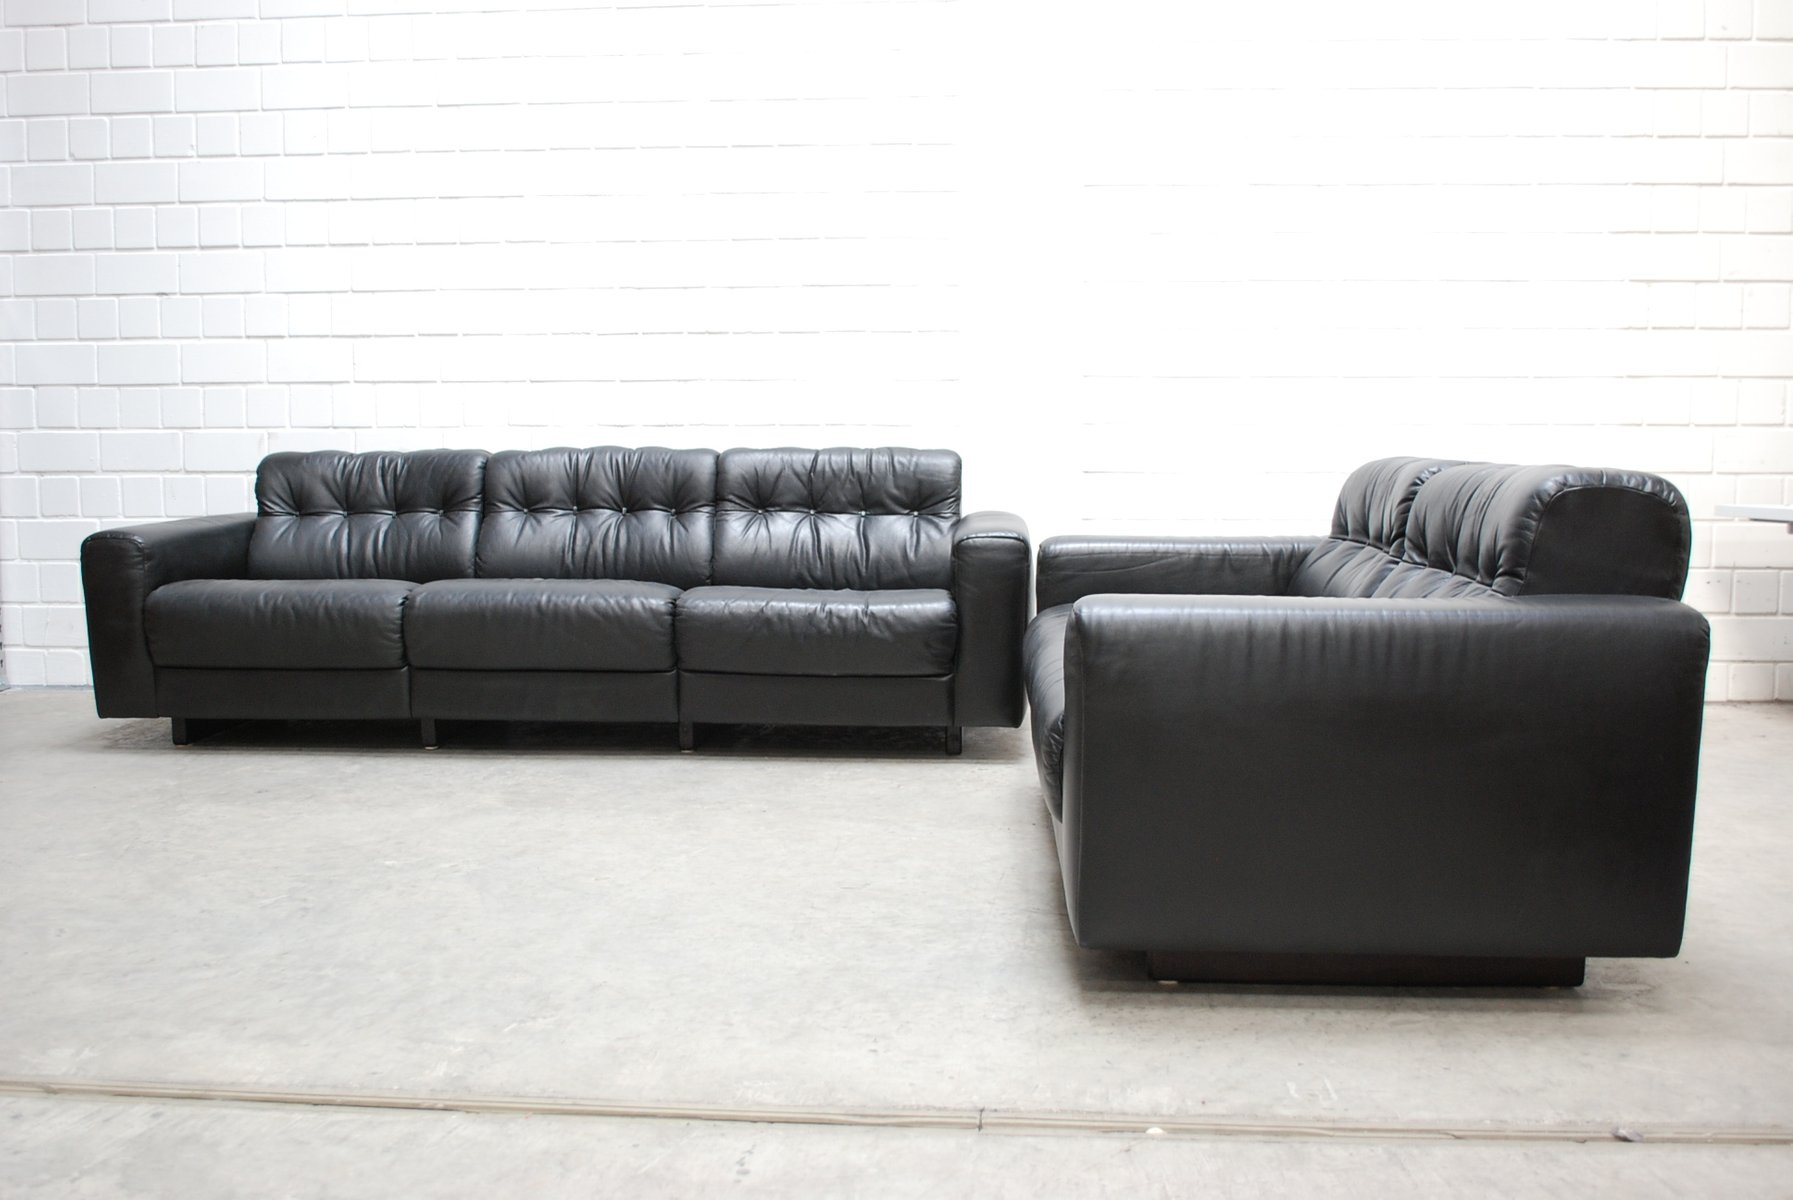 pdx room set black leather reviews piece layla in living style wayfair furniture